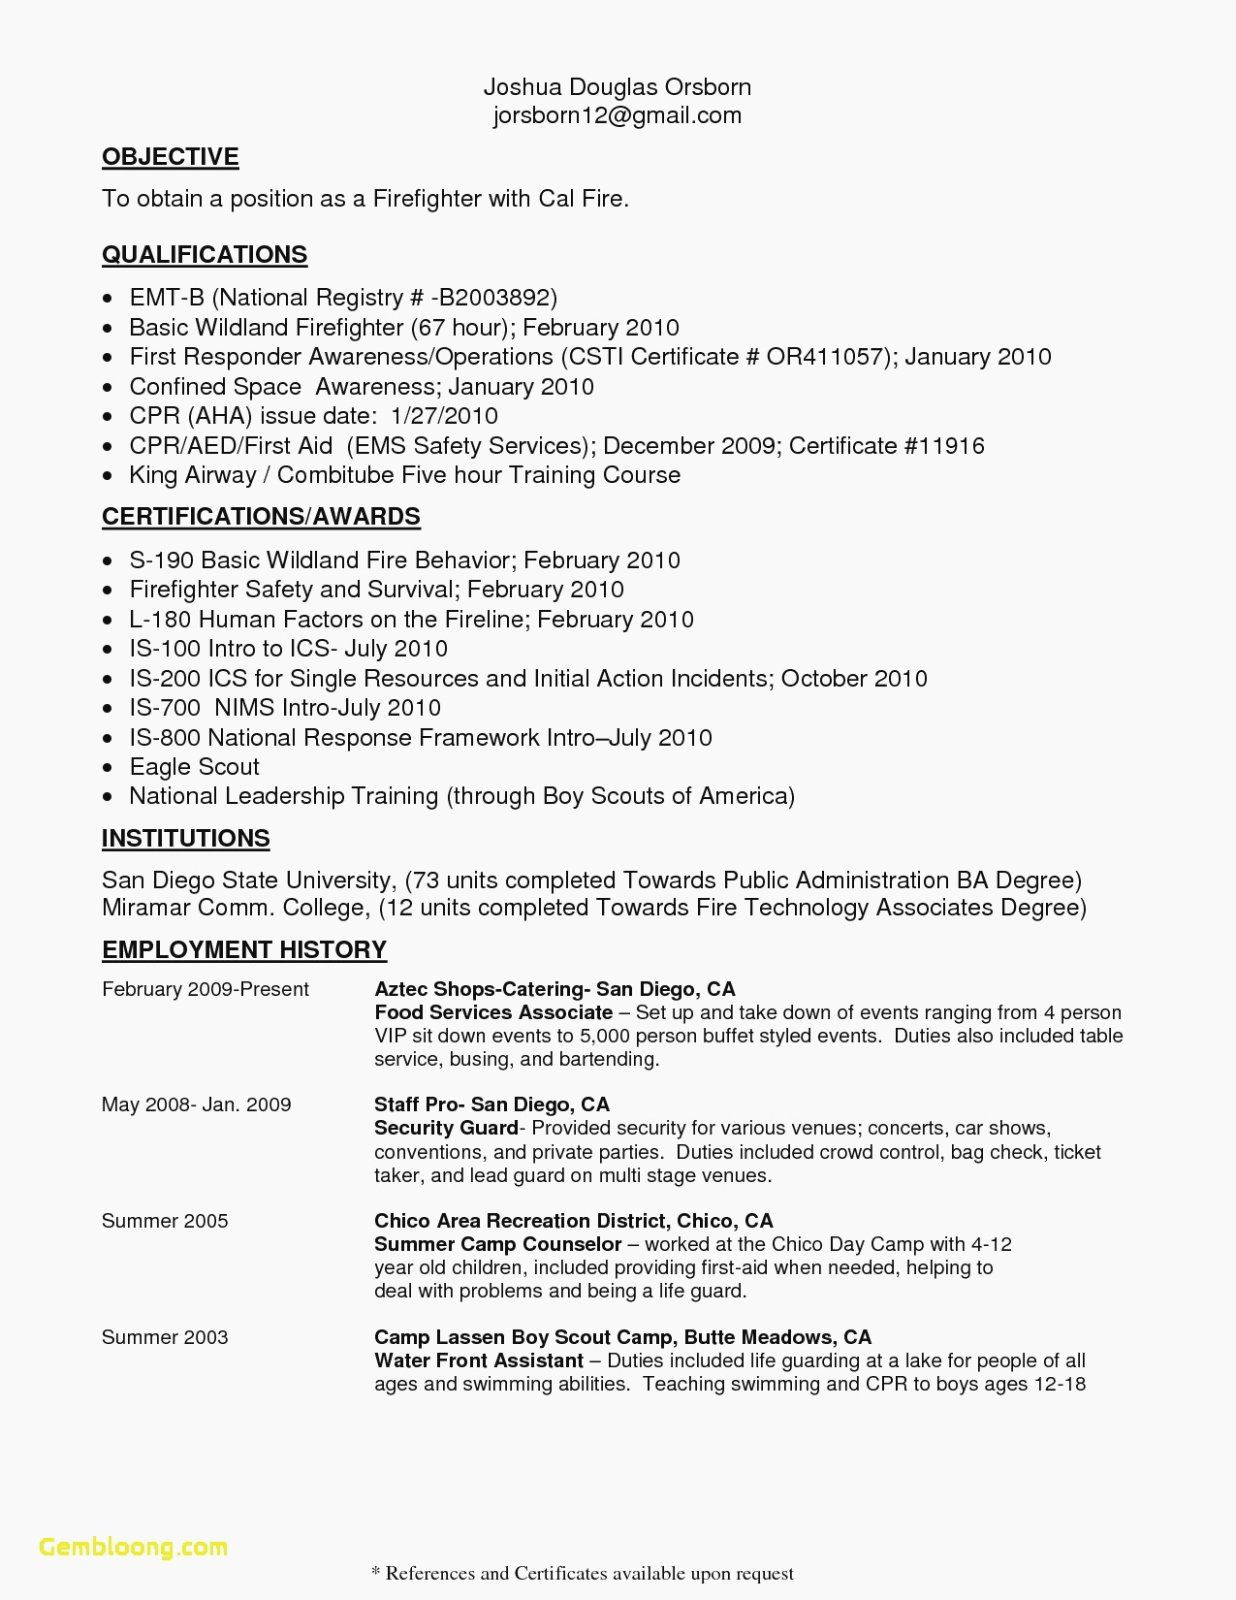 20 Firefighter Job Description Resume Firefighter Resume